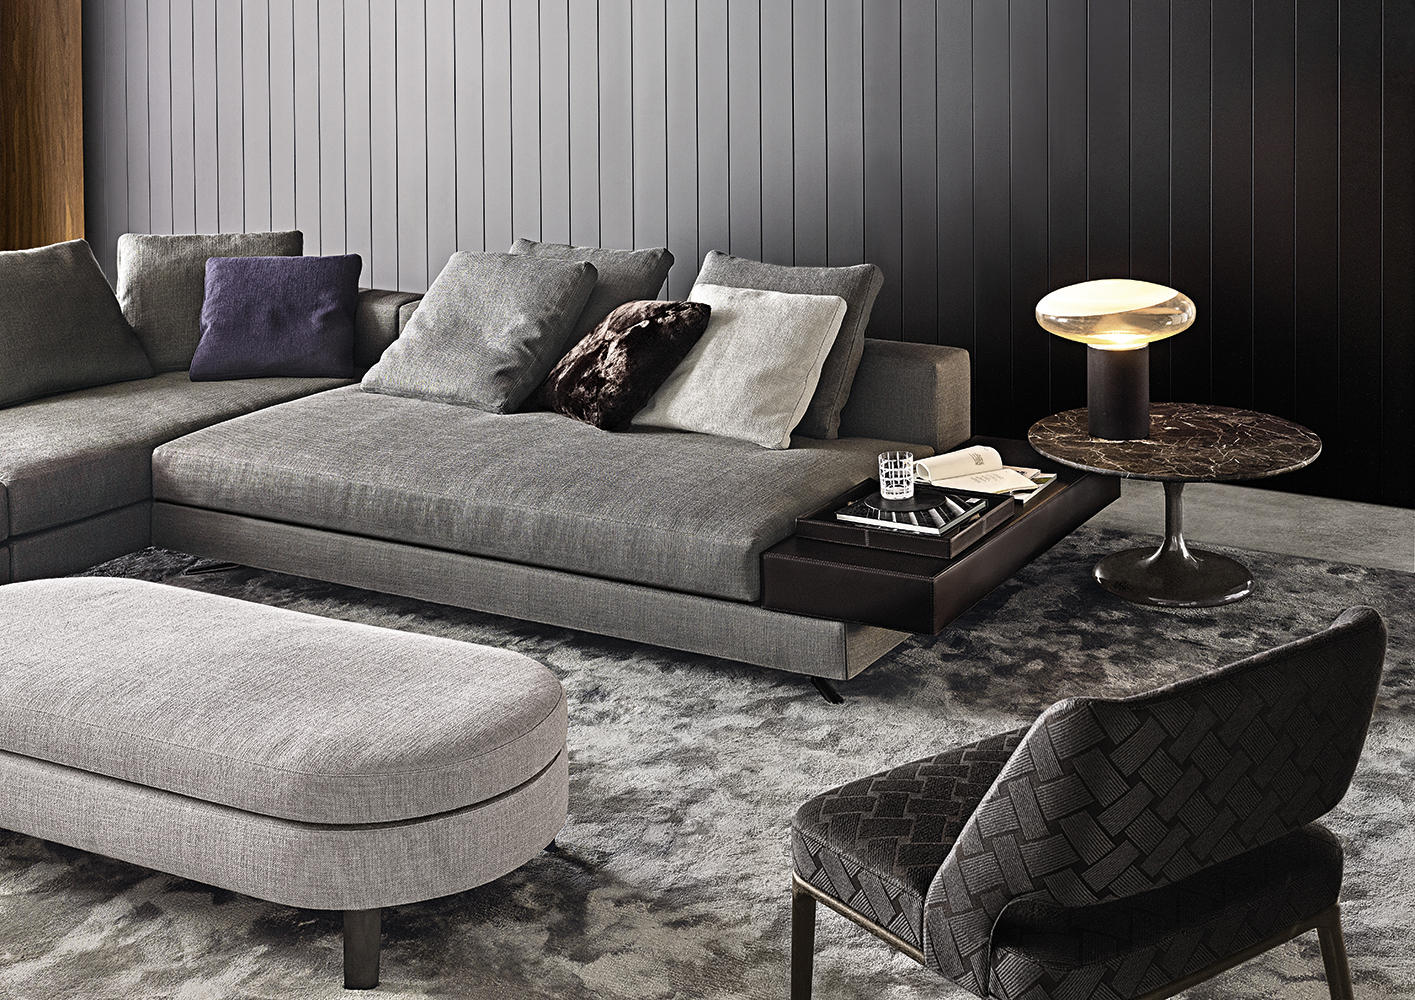 Enjoyable White Sofas From Minotti Architonic Caraccident5 Cool Chair Designs And Ideas Caraccident5Info